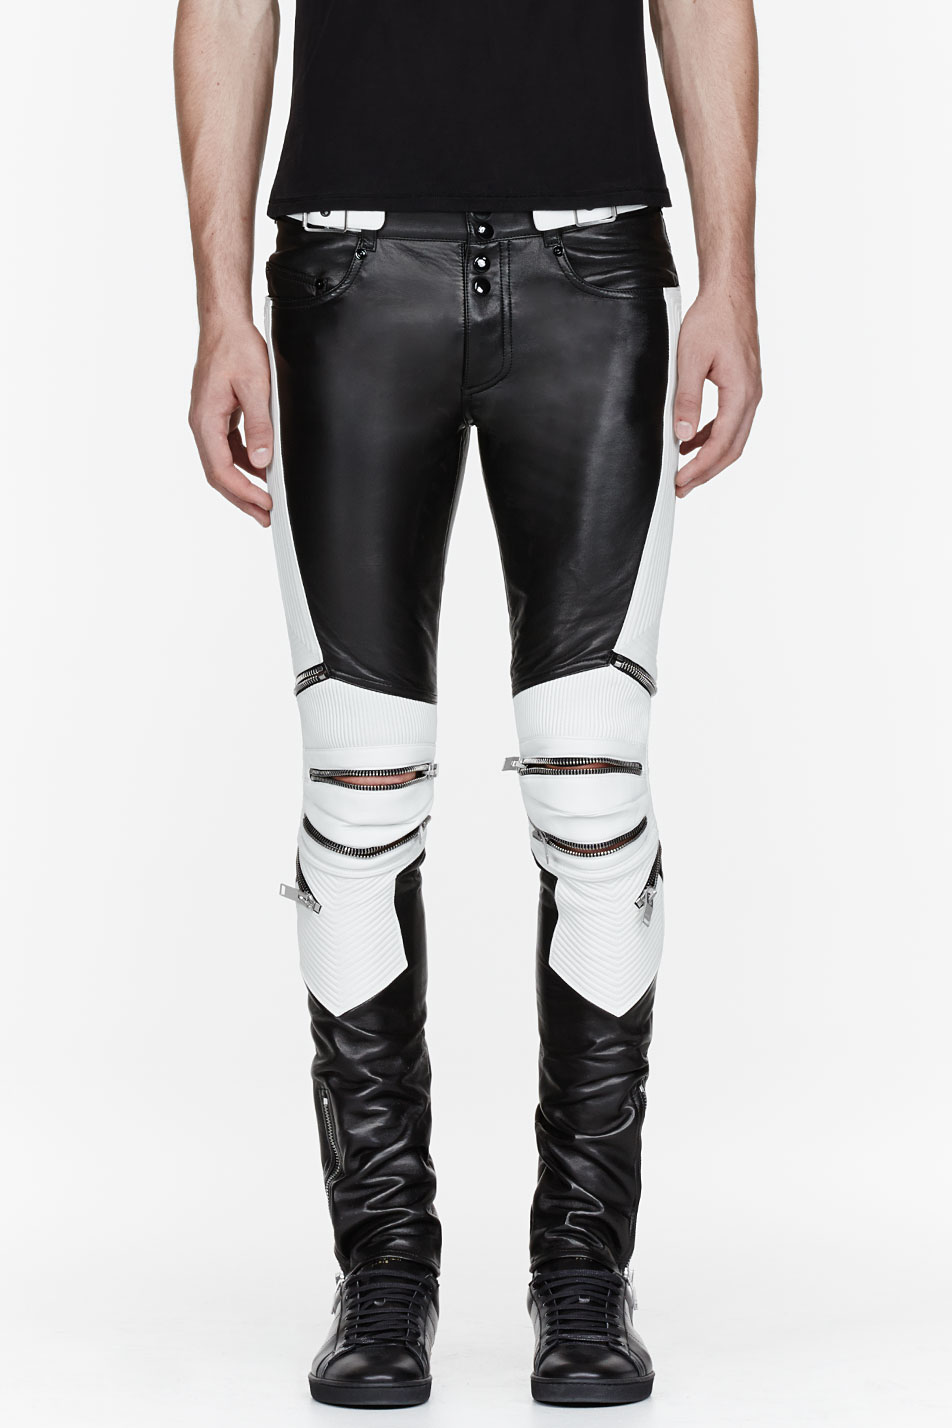 6a648178850bff Saint Laurent Black and White Ribbed Zipped Biker Pants in Black for ...